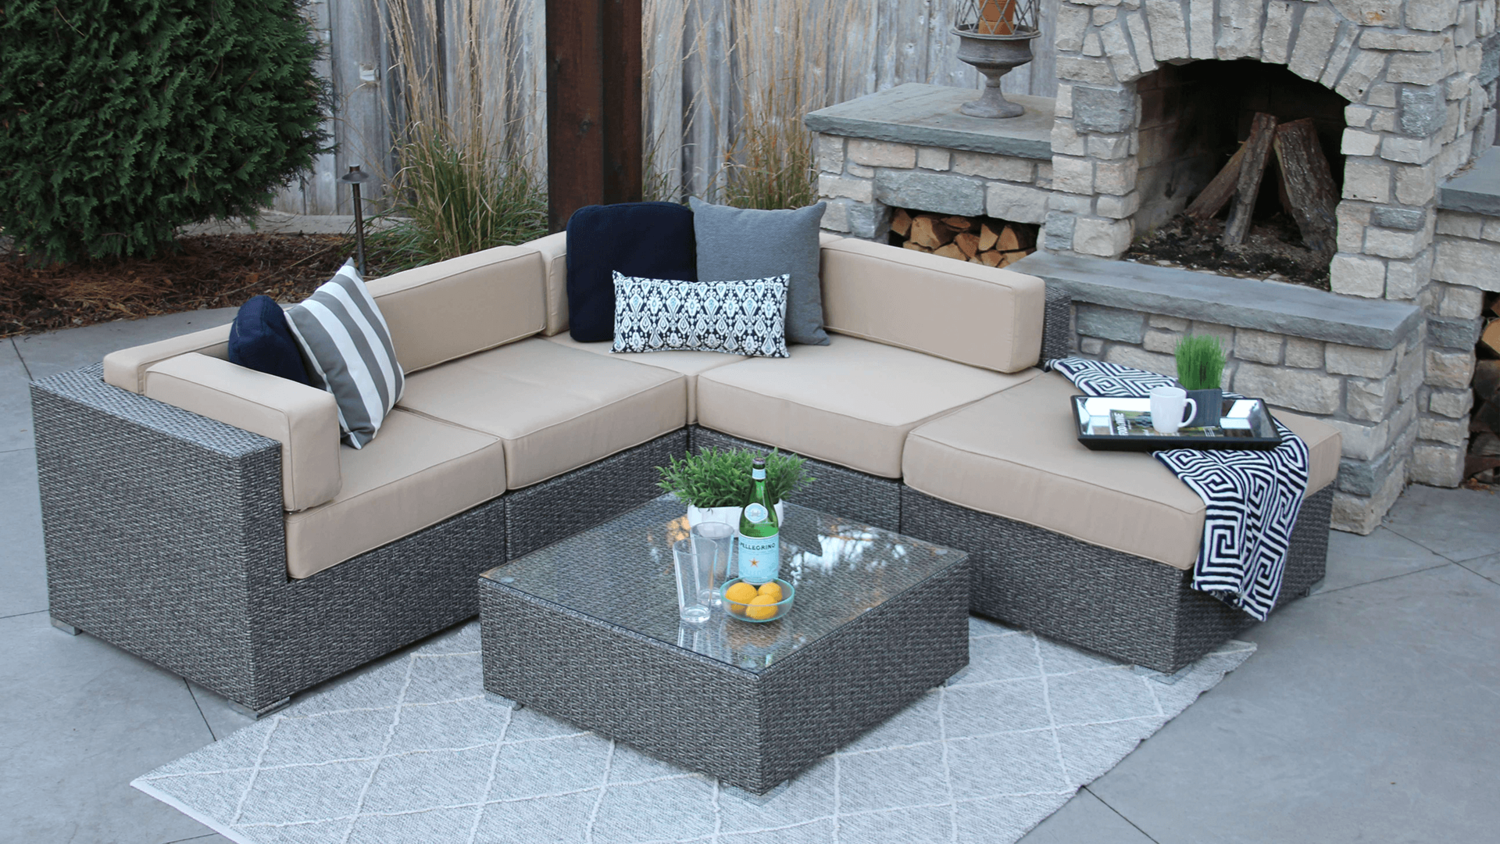 Halsted 6 piece wicker patio sofa sectional meldecco patio furniture